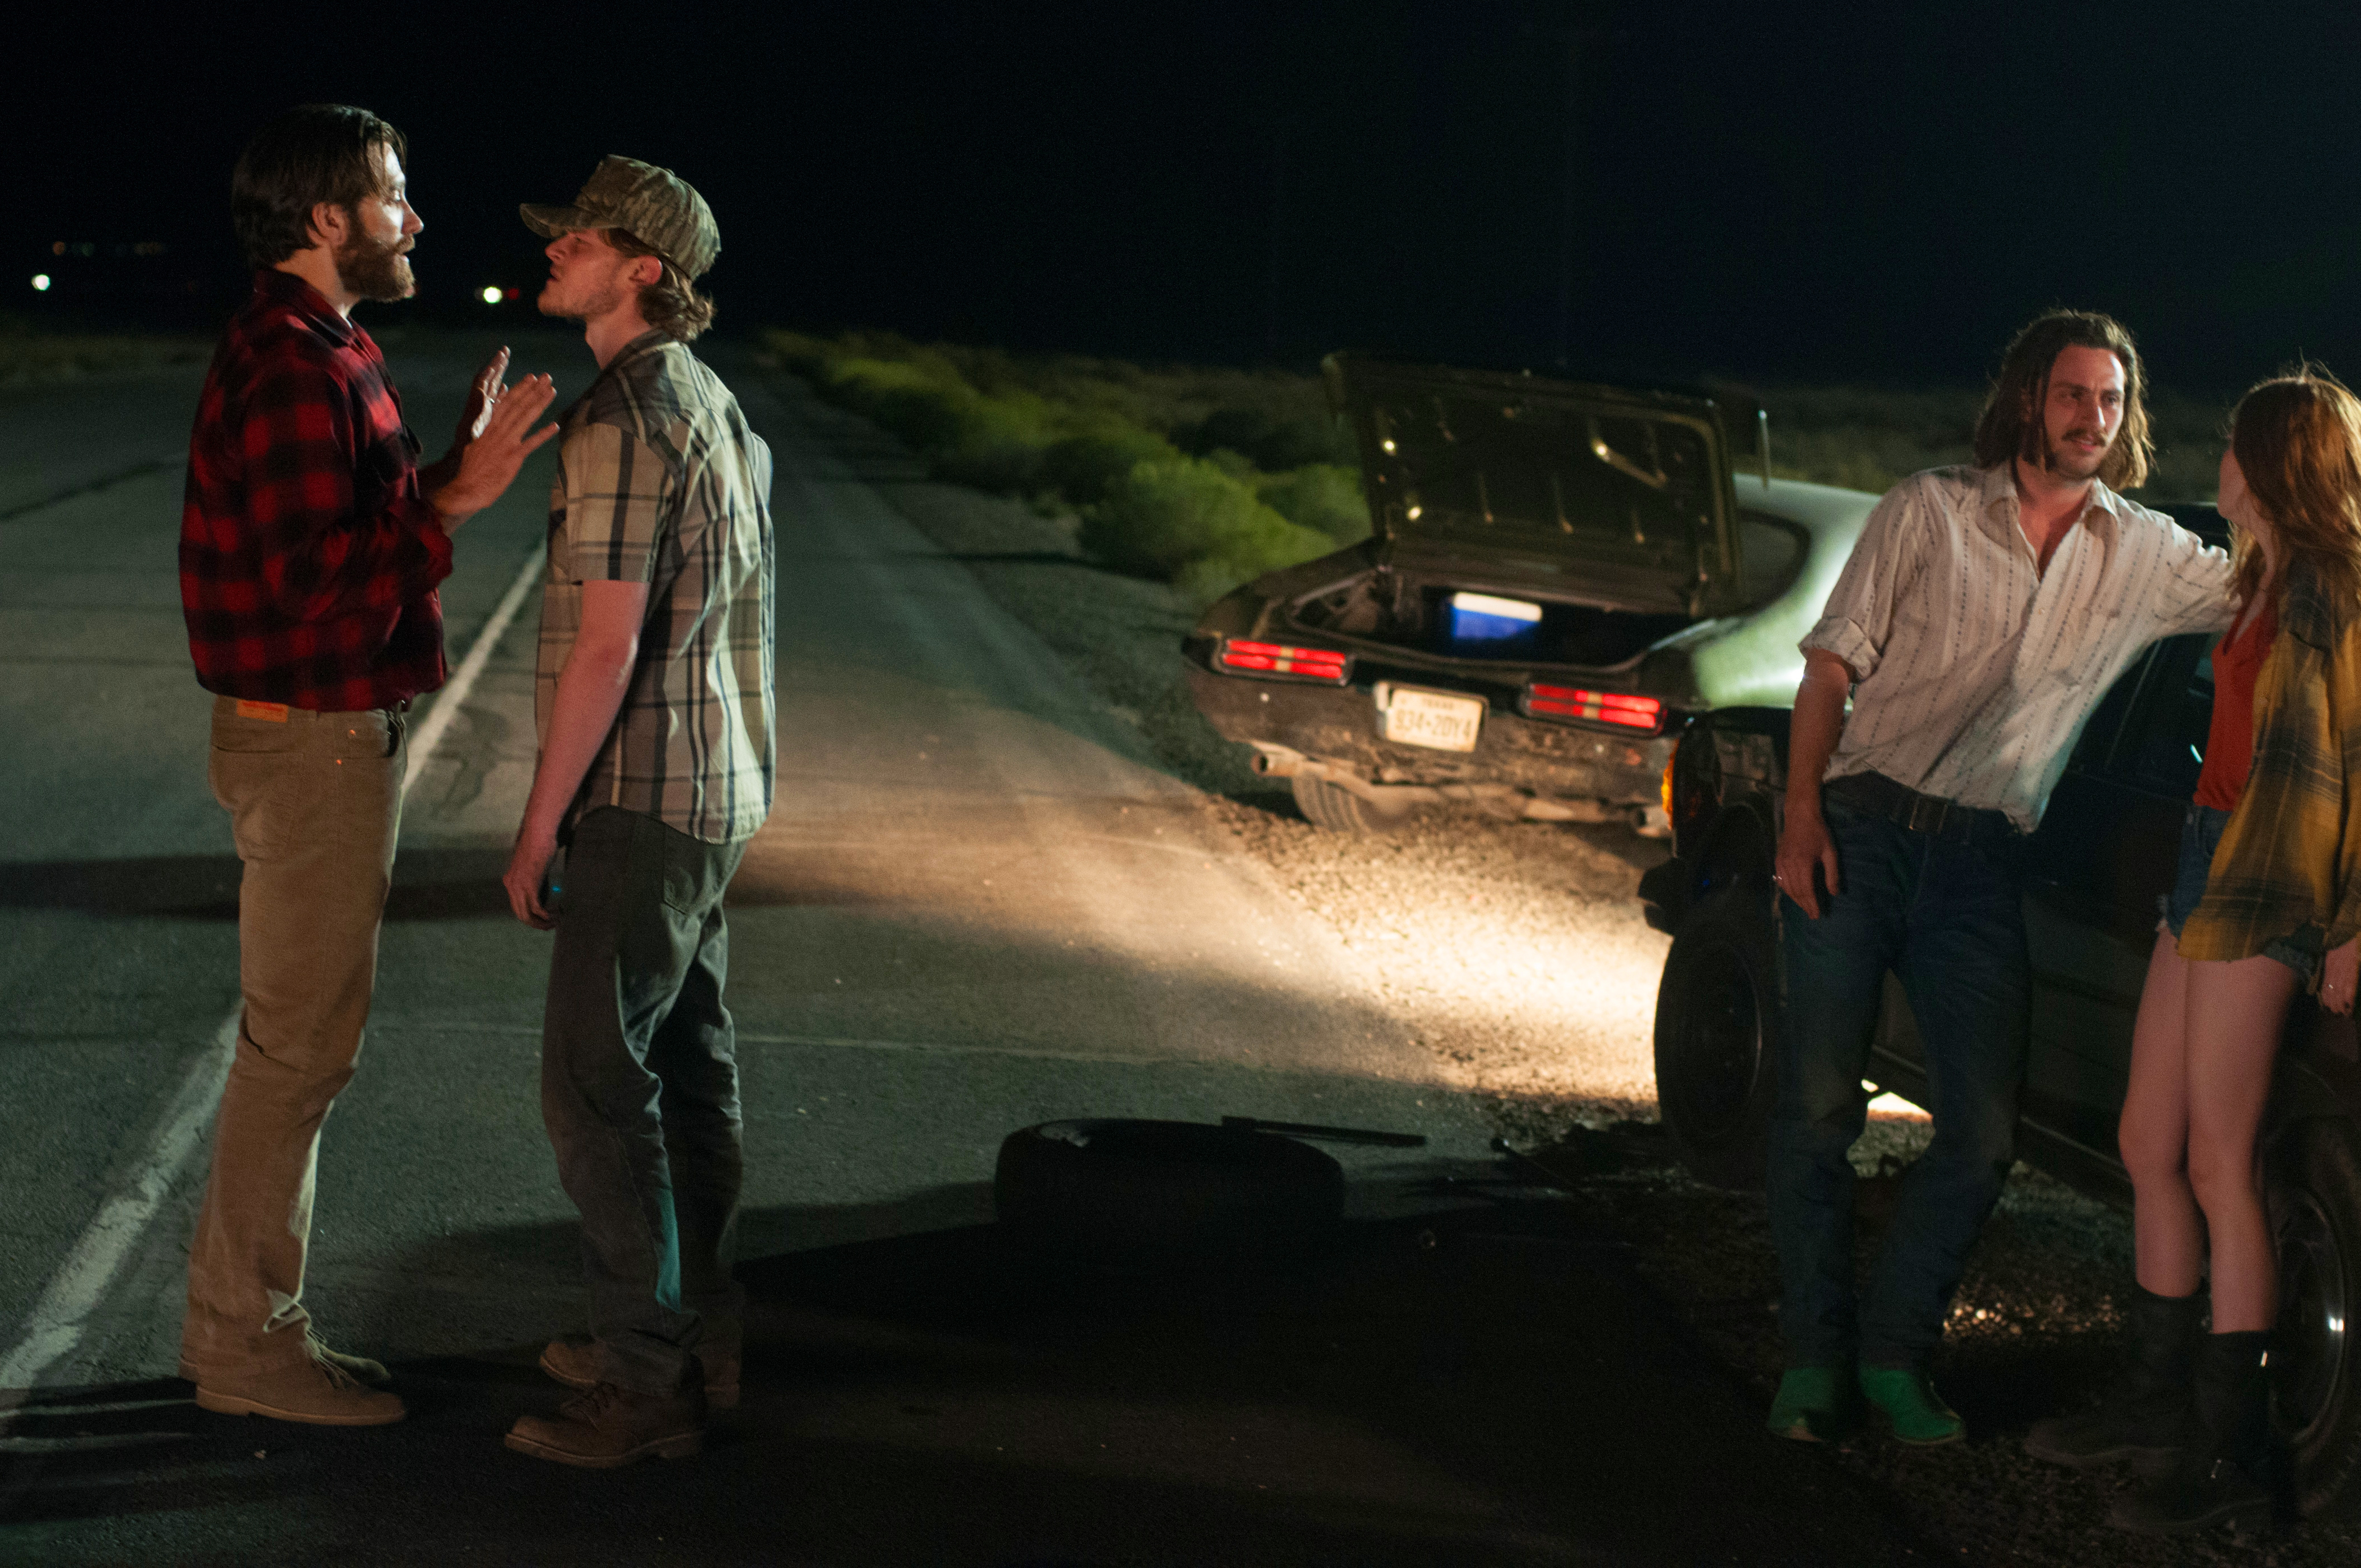 Image of: Ending The Highway Attack And Kidnapping Scene Plays Out Under An Eerie Green Glow Slightly Suggestive Of Nightvision Footage And The Wild Things That Crawl In The Schleicher Spin Book Vs Film tony Susan Vs nocturnal Animals Litreactor